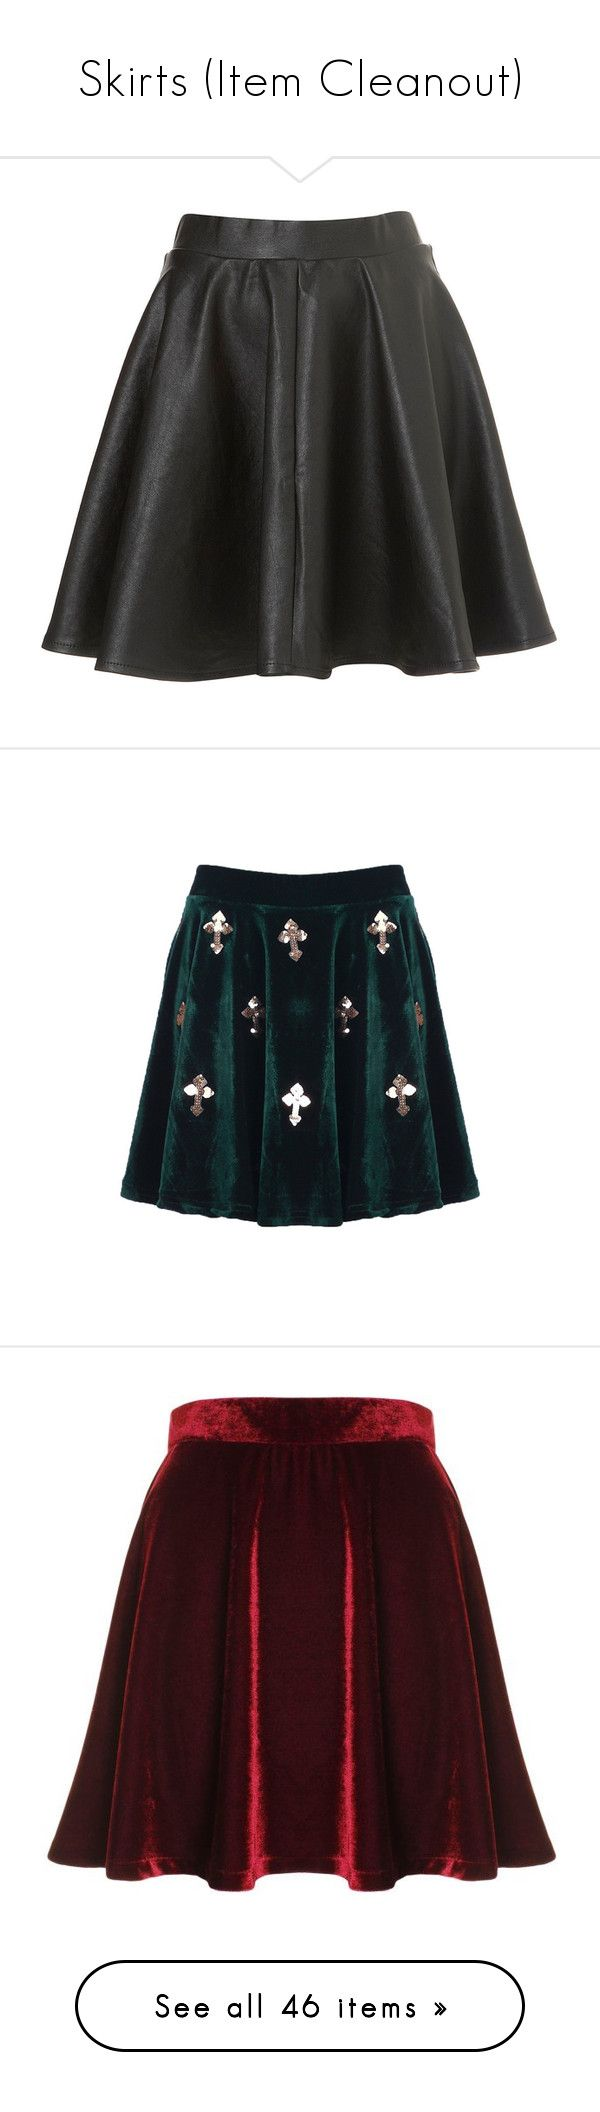 """Skirts (Item Cleanout)"" by tarakline ❤ liked on Polyvore featuring skirts, bottoms, saias, topshop, black, circle skirts, topshop skirts, skater skirts, flared skirts and mini skirts"